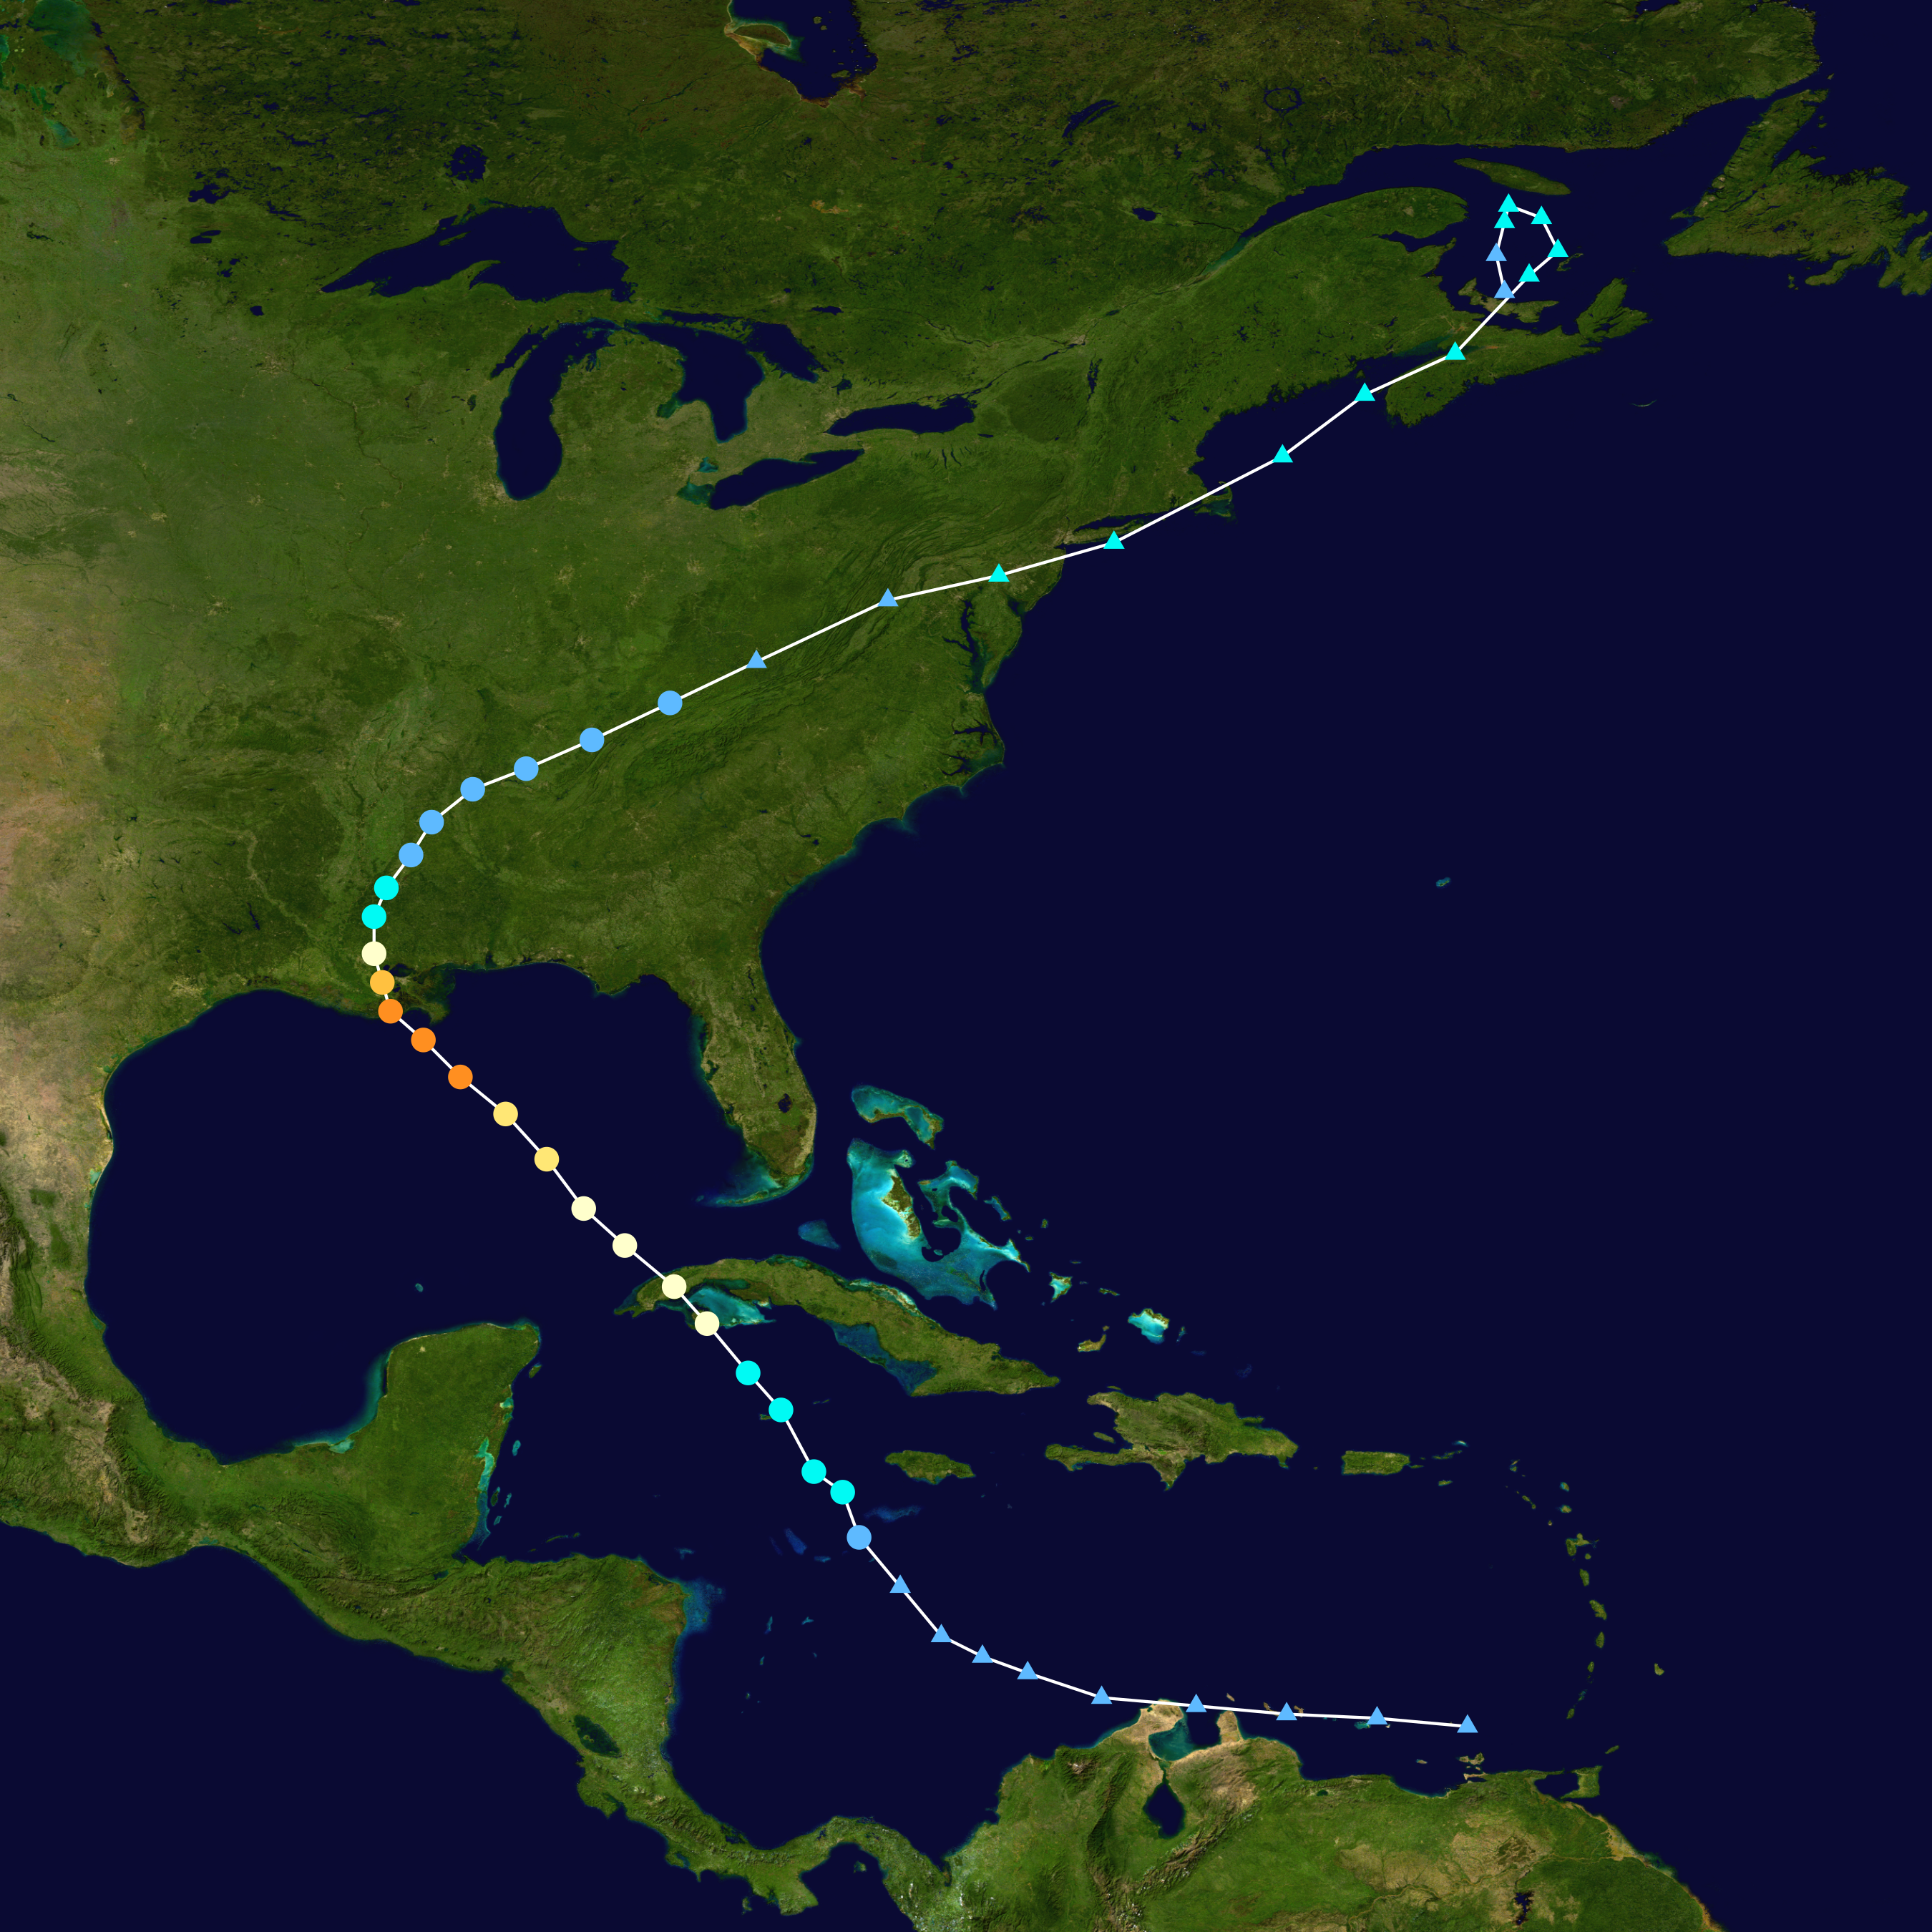 The path of Ida from the Caribbean into Atlantic Canada from August 23rd to September 4th.